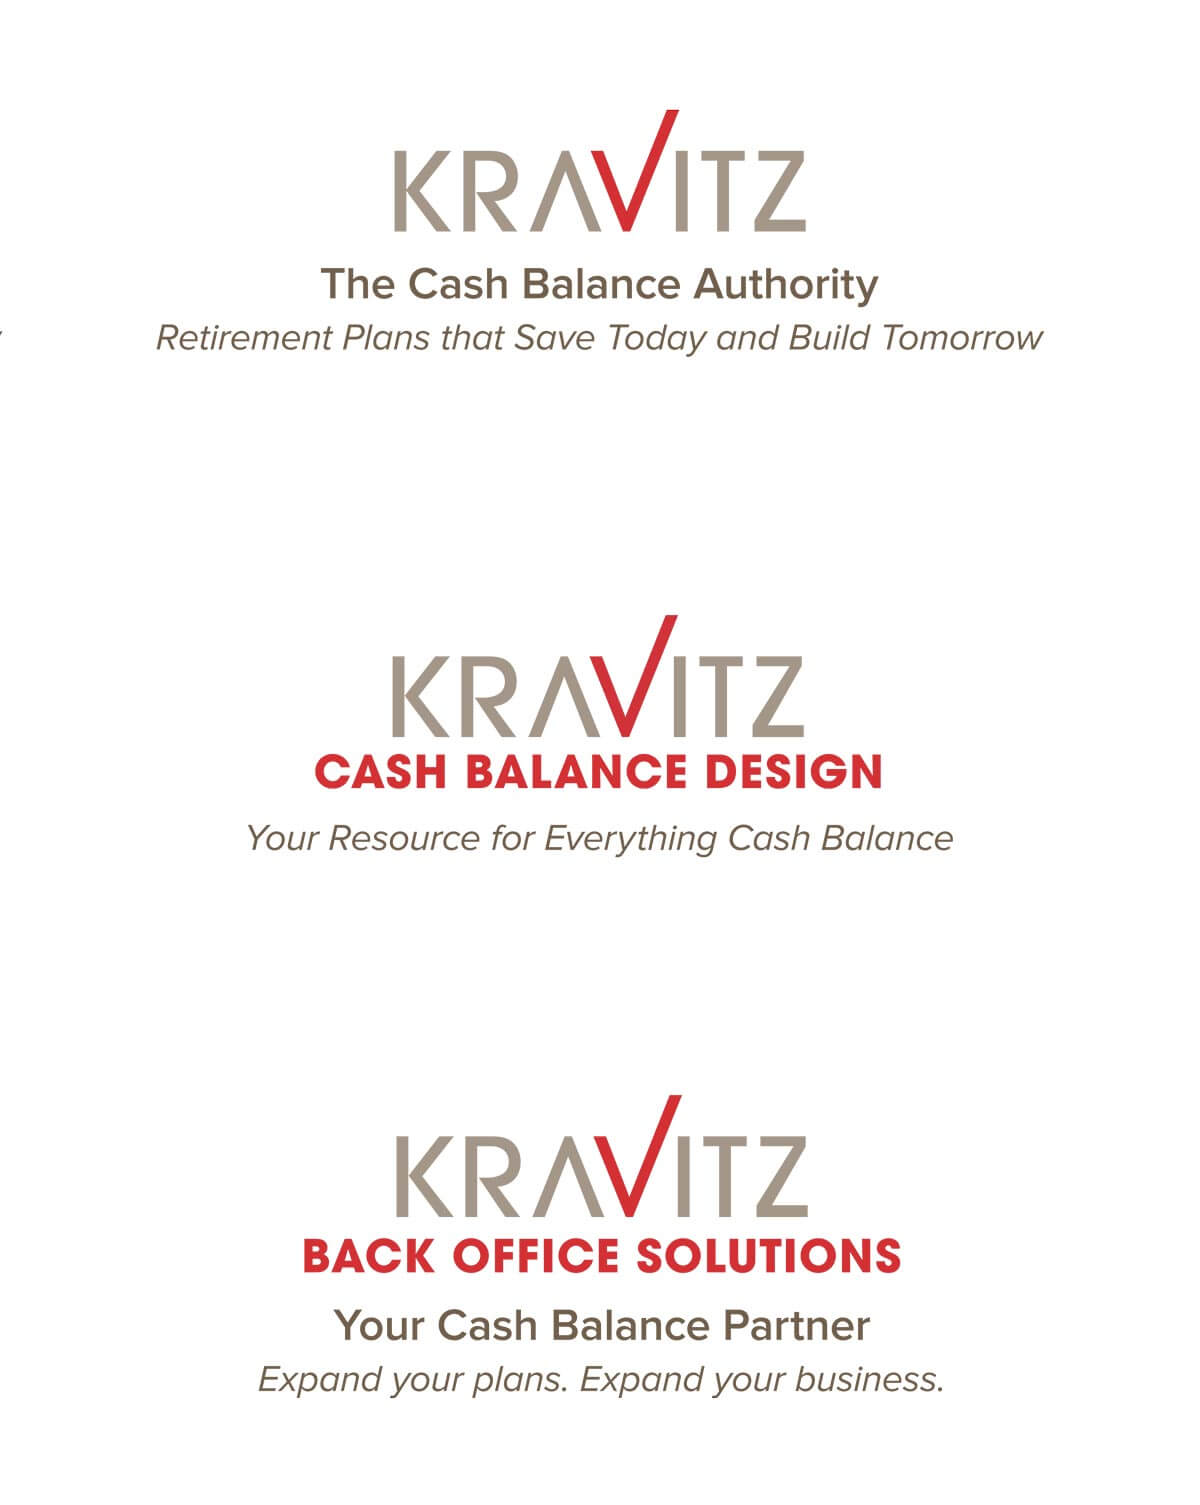 Kravitz financial services logos